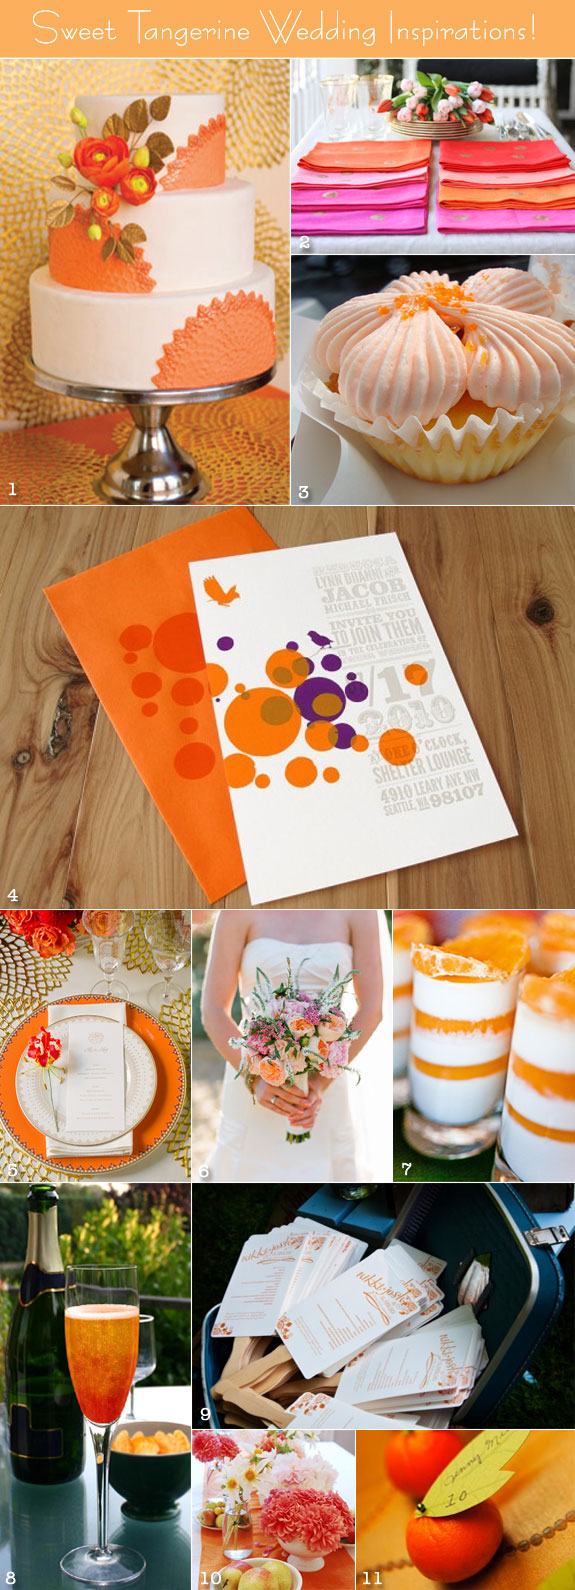 Tangerine Tango decorations, cake, bouquet, and other wedding inspirations